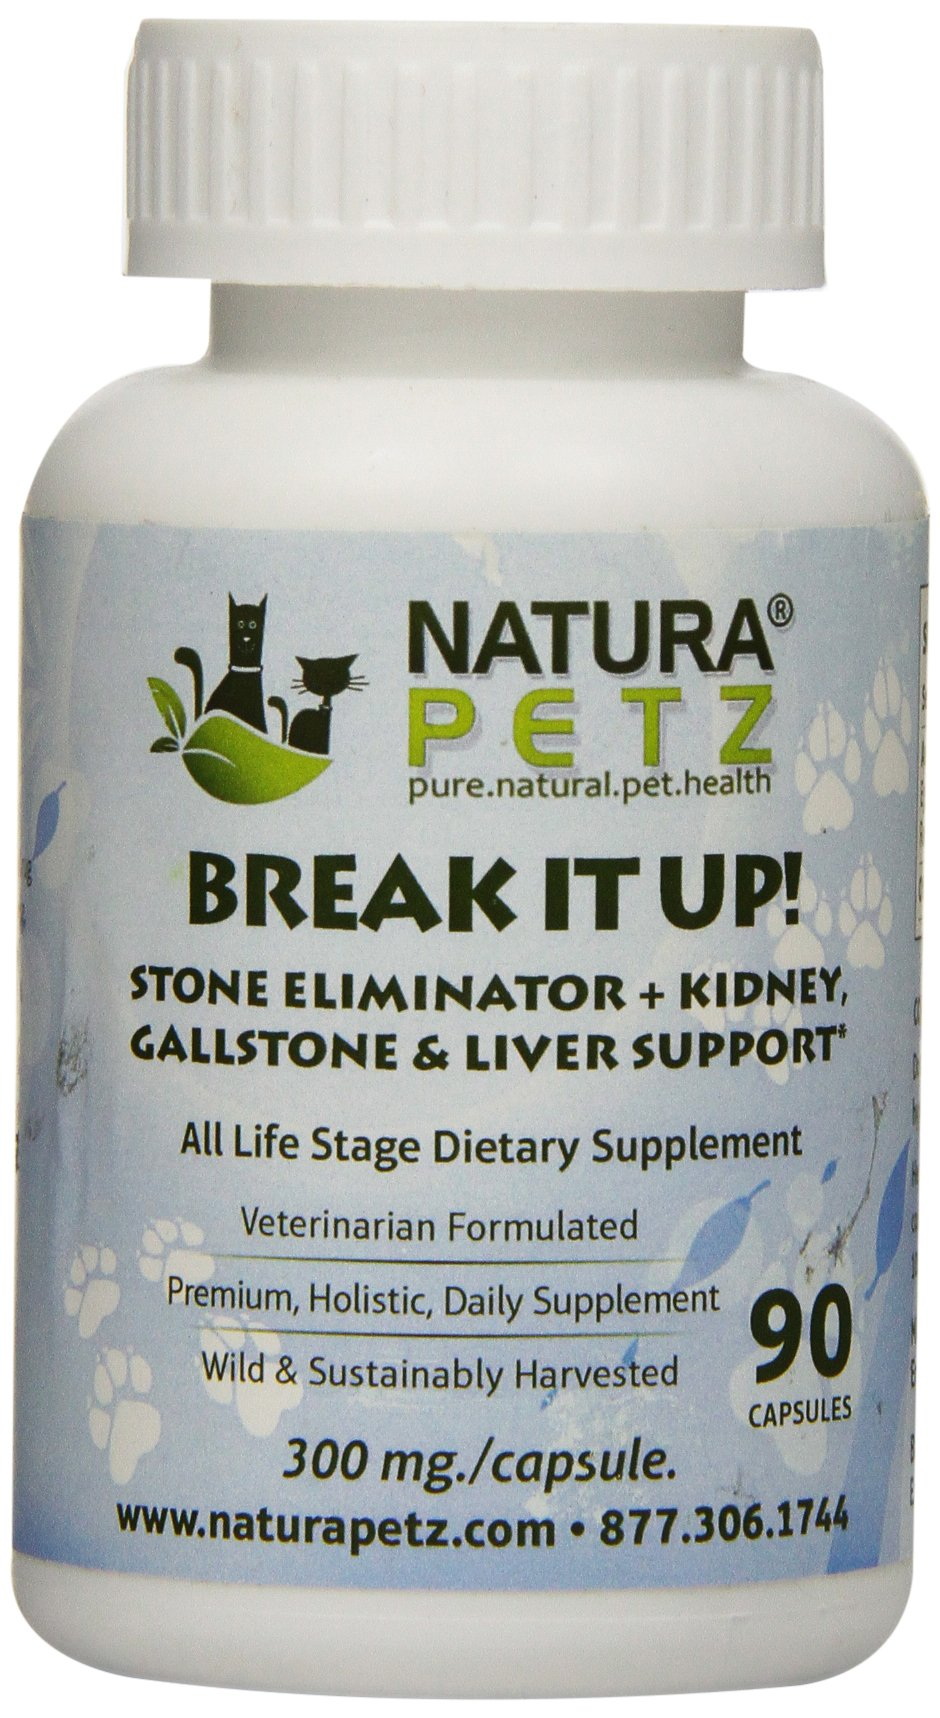 Natura Petz Break It Up! Stone Eliminator (All Types), Kidney, Gallstone and Liver Support for Pets, 90 Capsules, 300mg Per Capsule